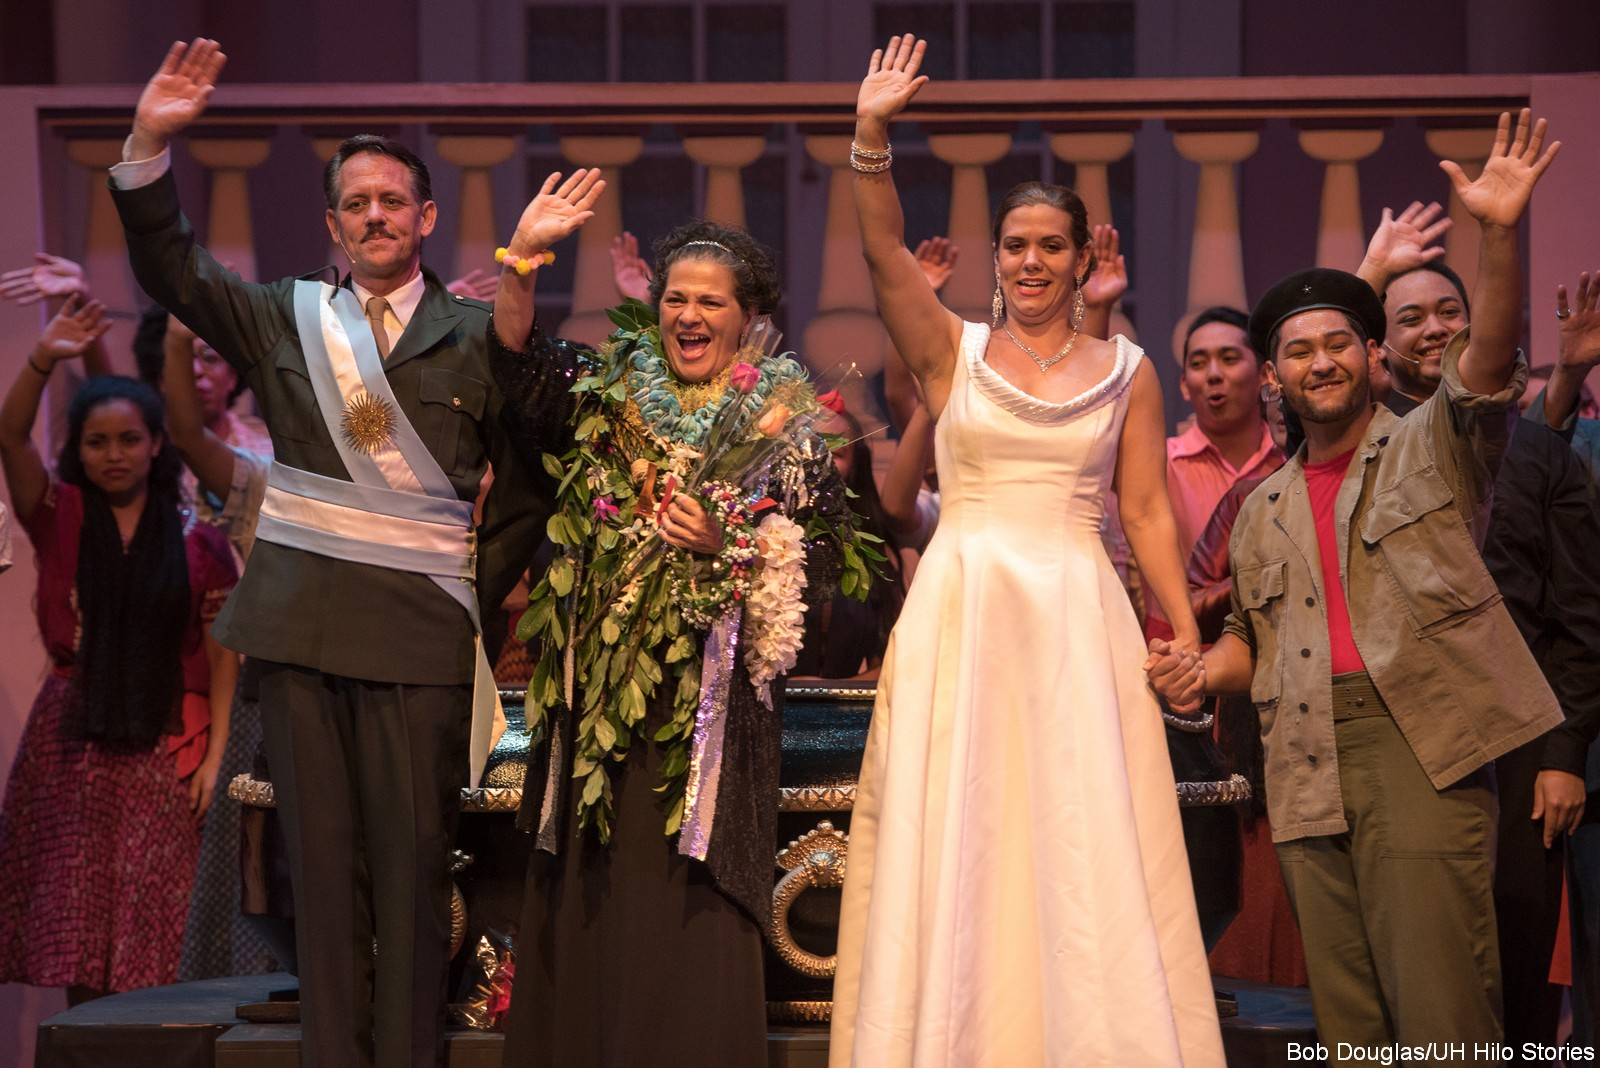 PHOTOS: Final performance of Evita